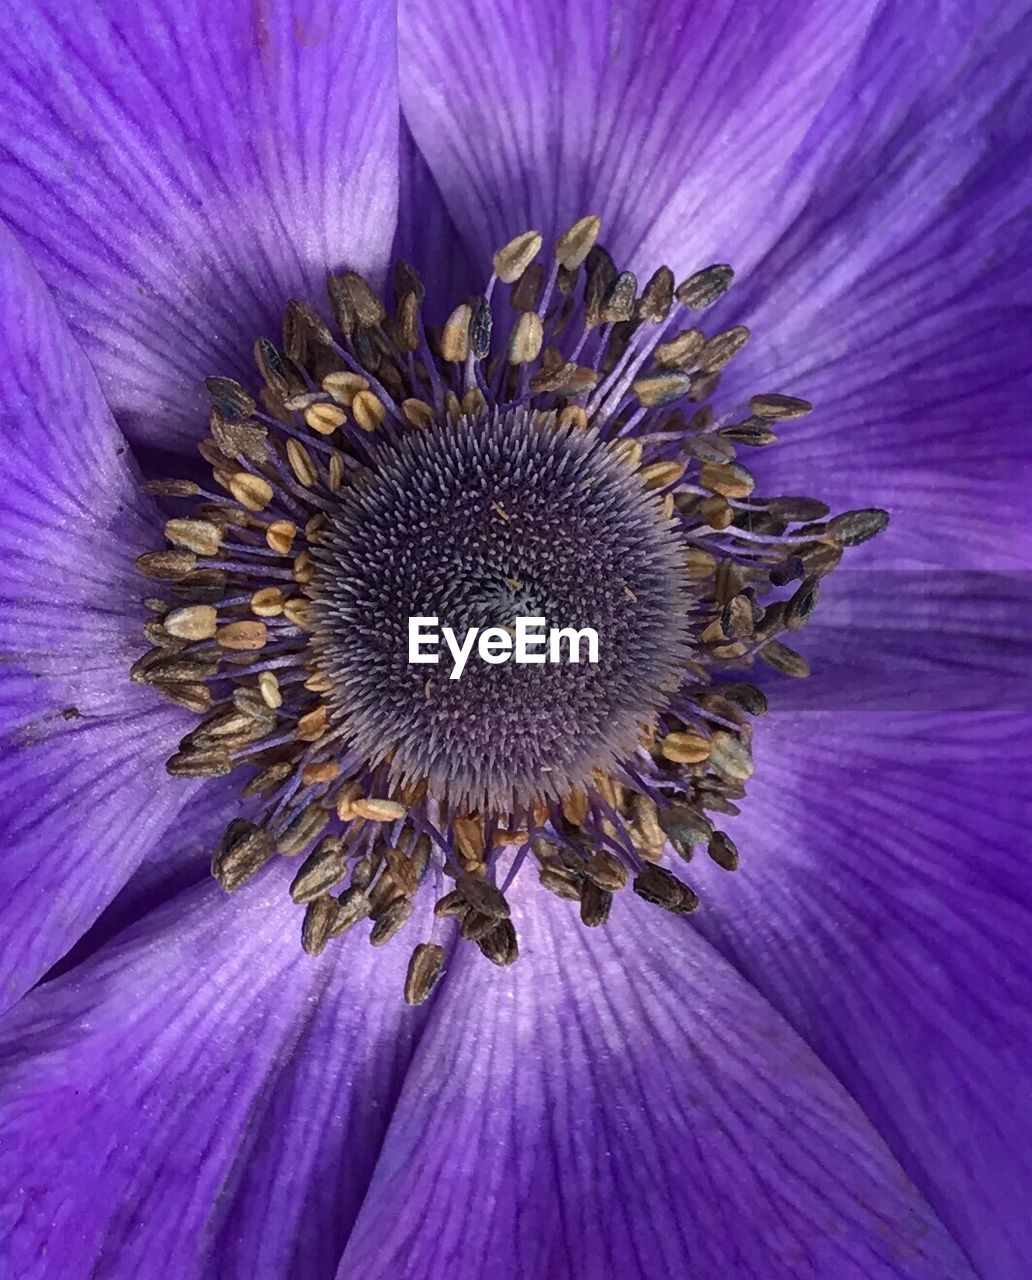 flower, purple, petal, fragility, flower head, beauty in nature, pollen, nature, freshness, growth, close-up, no people, plant, backgrounds, day, outdoors, blooming, thistle, passion flower, eastern purple coneflower